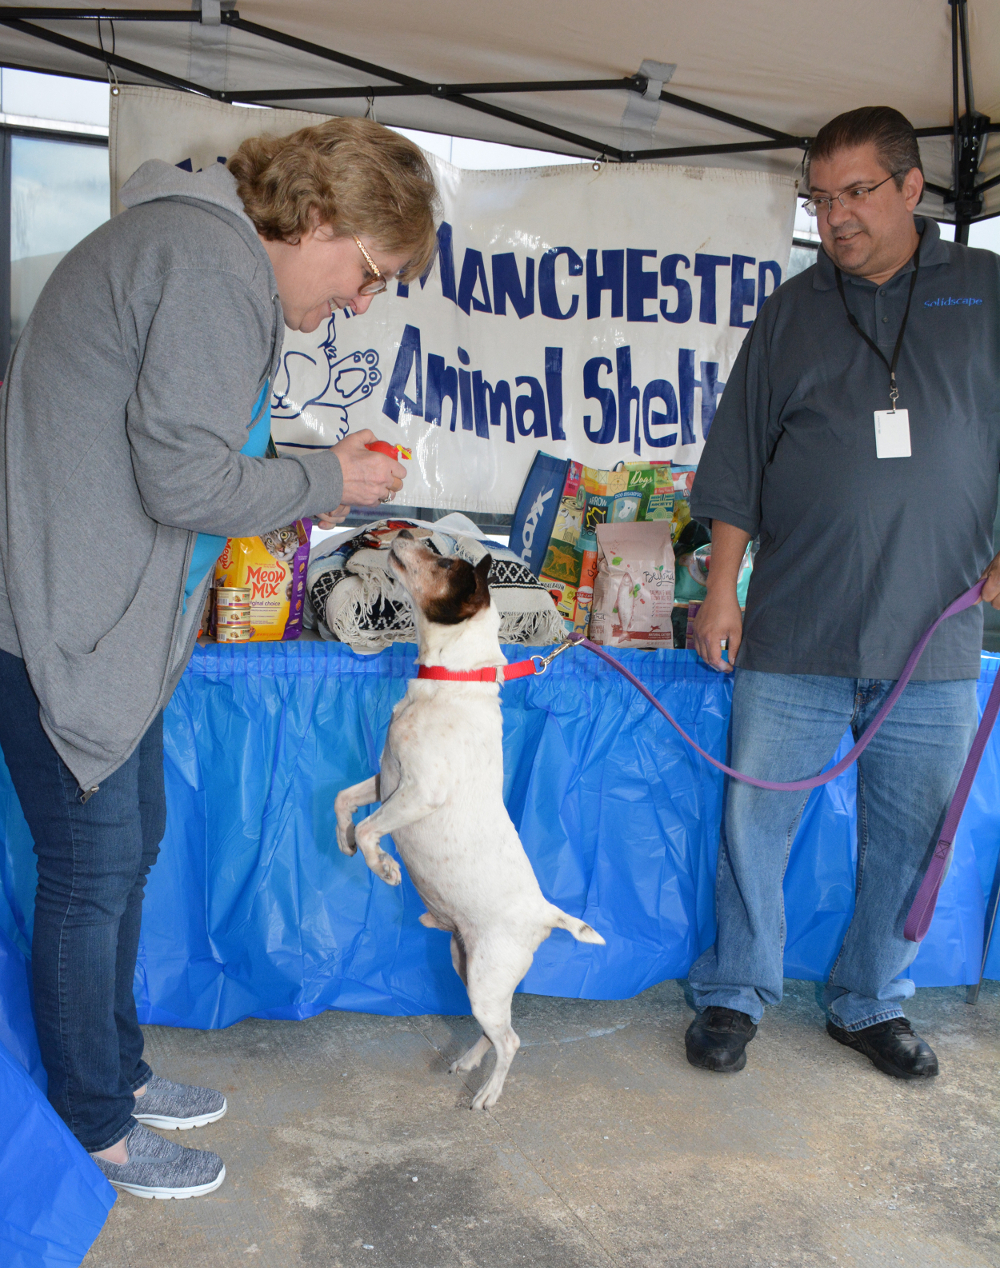 Manchester-Animal-Shelter-Day-at-Solidscape-B.jpg